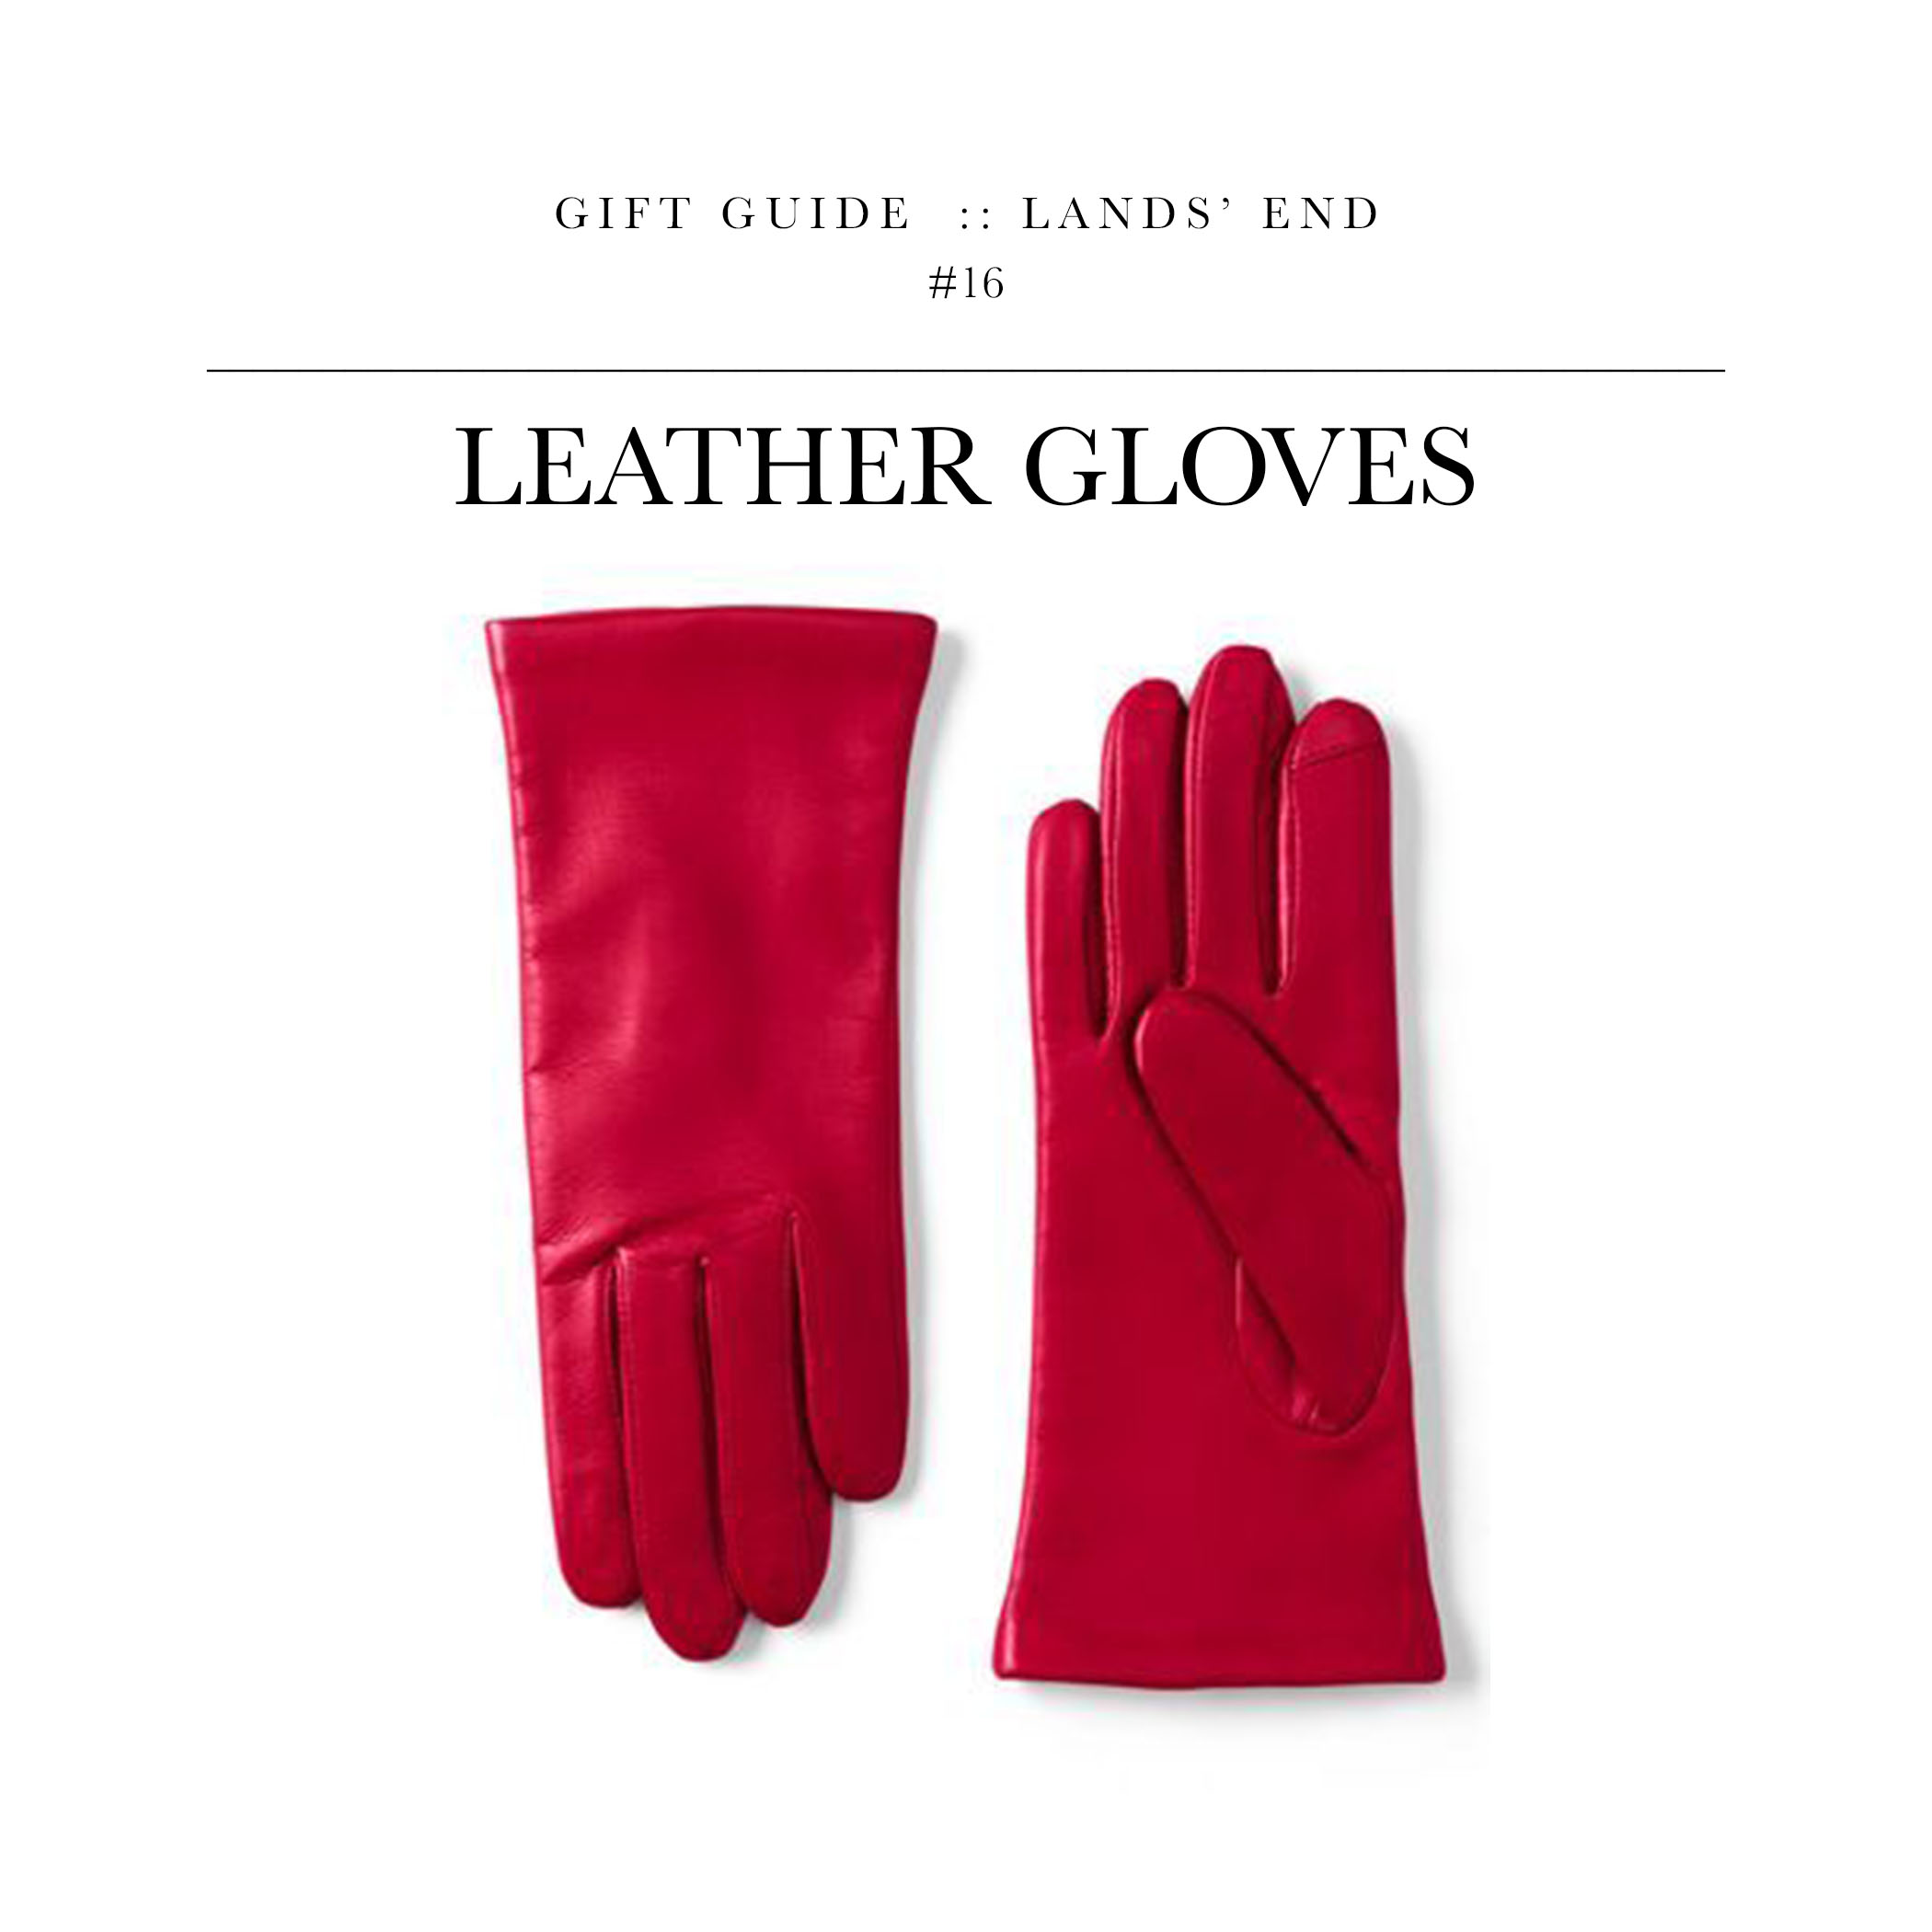 Leather Gloves  via Lands' End  //  Great gift if you're trying to stay under $100.